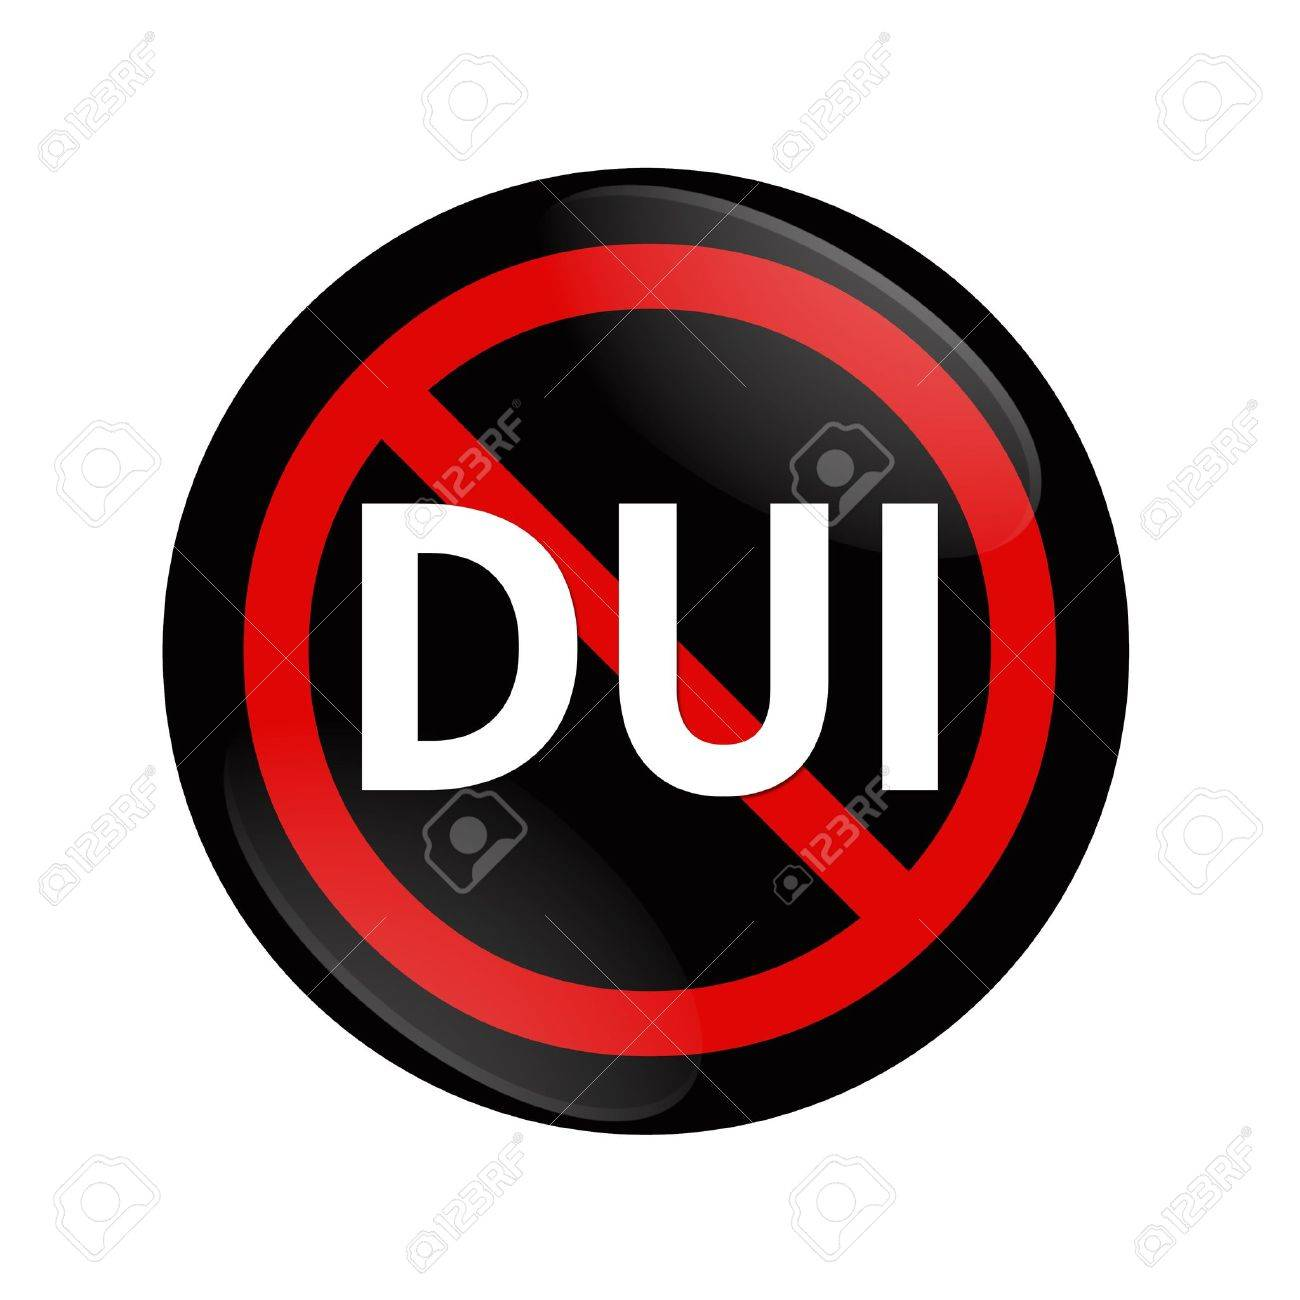 A black and red  button with word DUI and not symbol isolated on white, Stop Drinking and Driving Stock Photo - 17996667